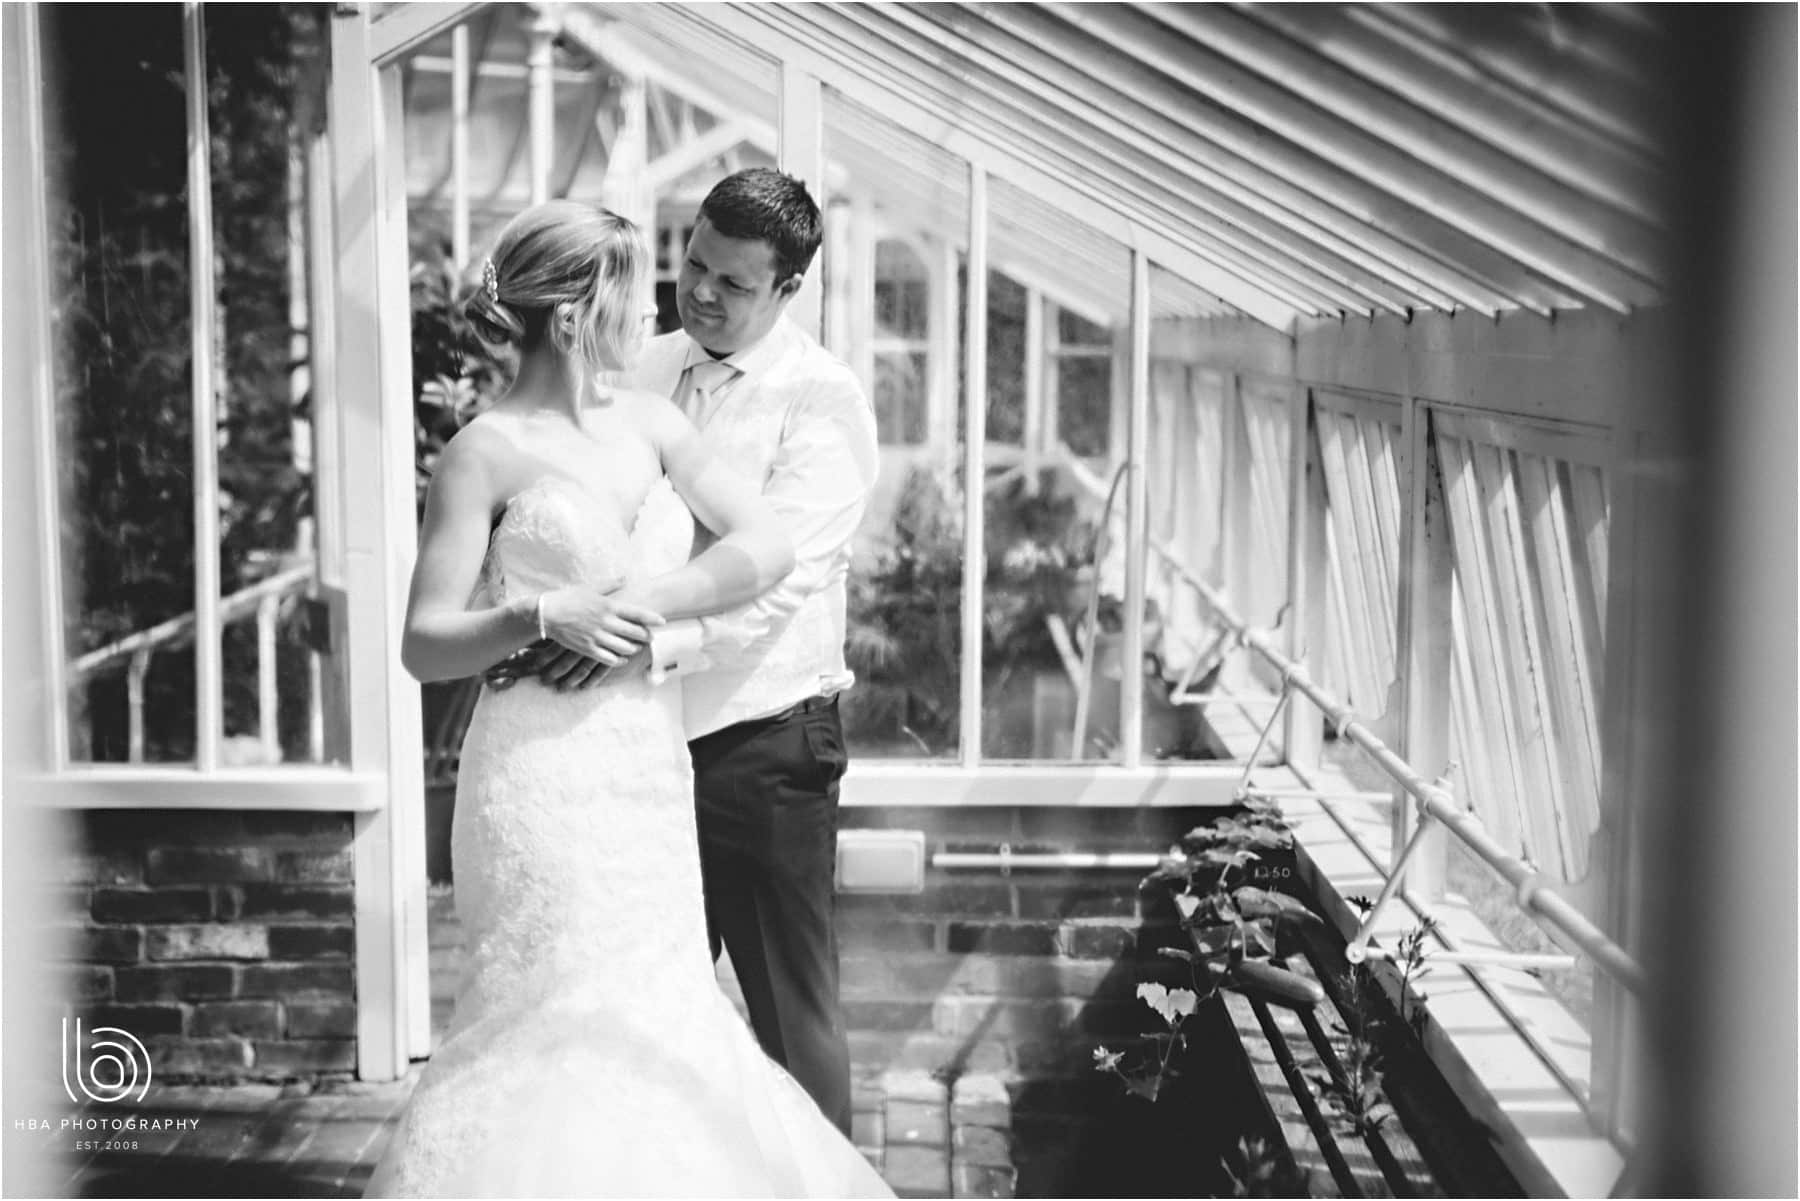 the bride & groom in the greenhouse